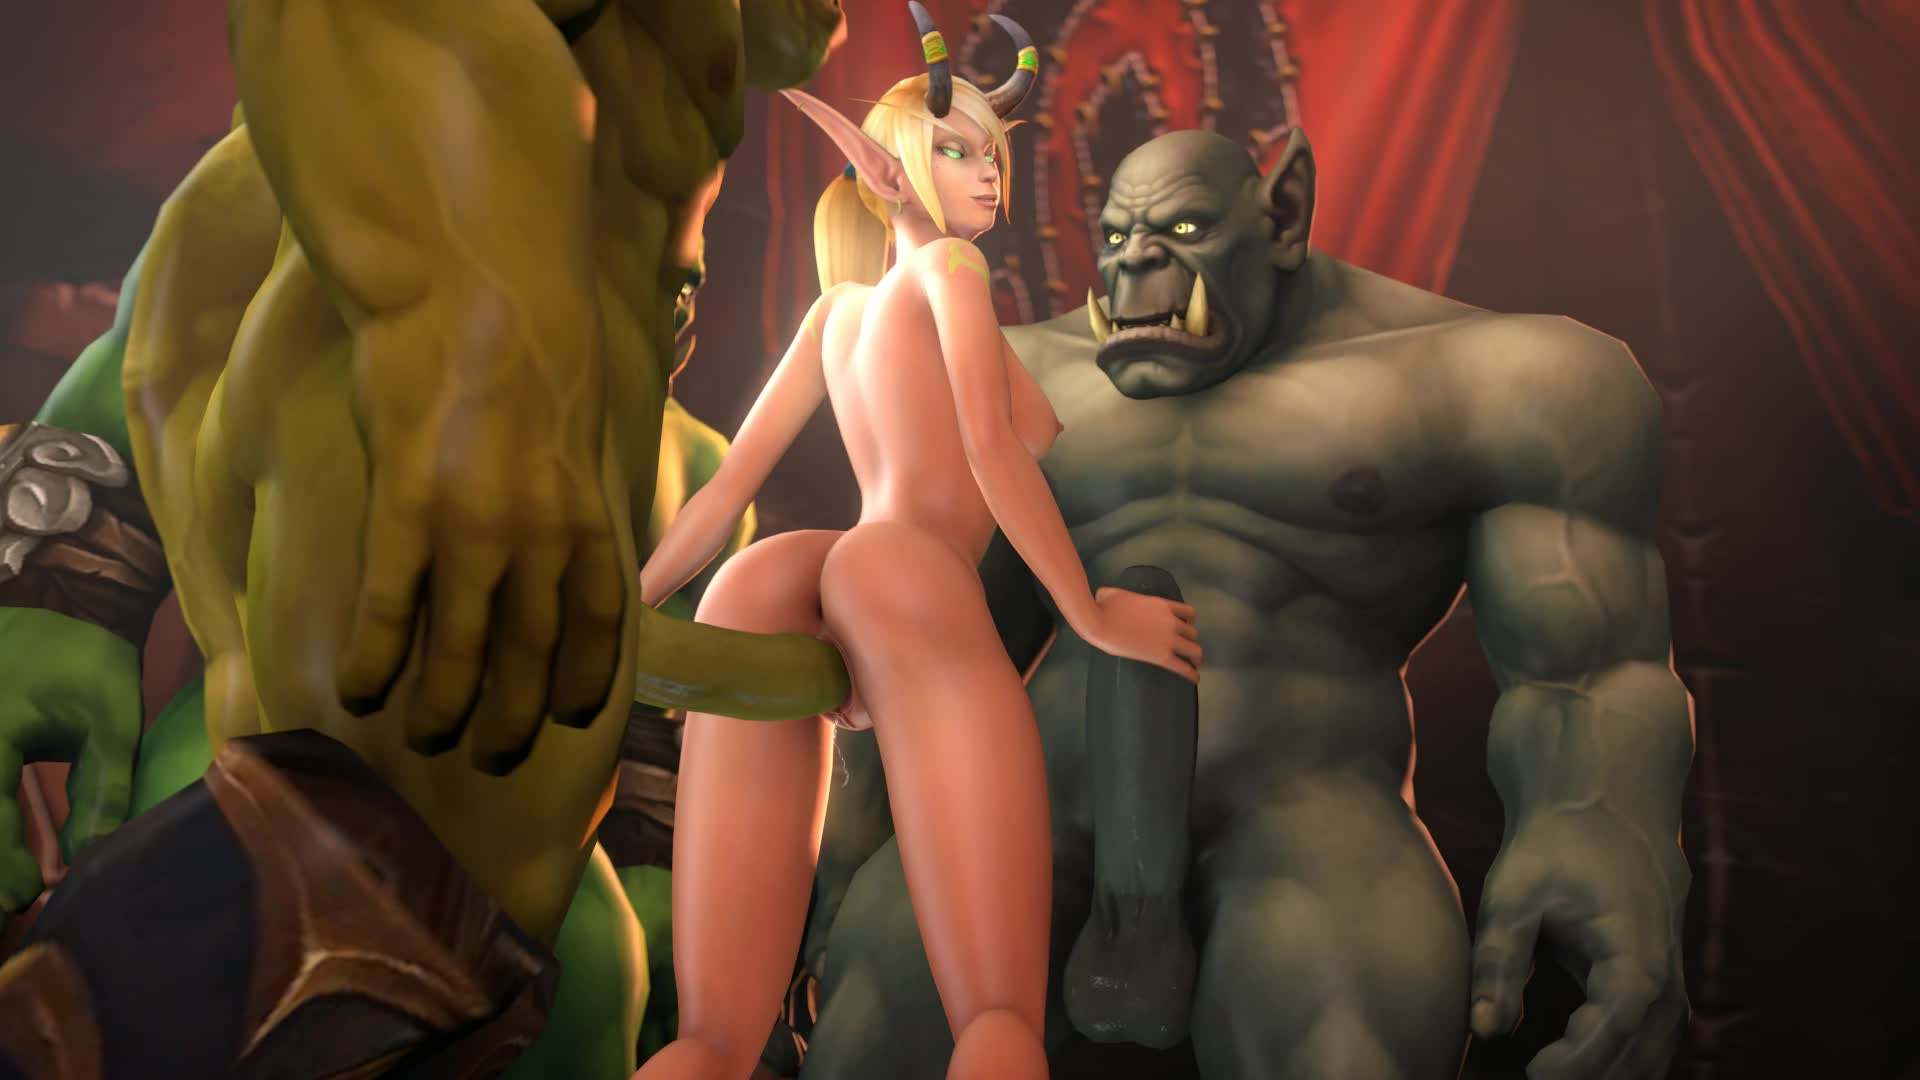 3d World of Warcraft porn help anime pic